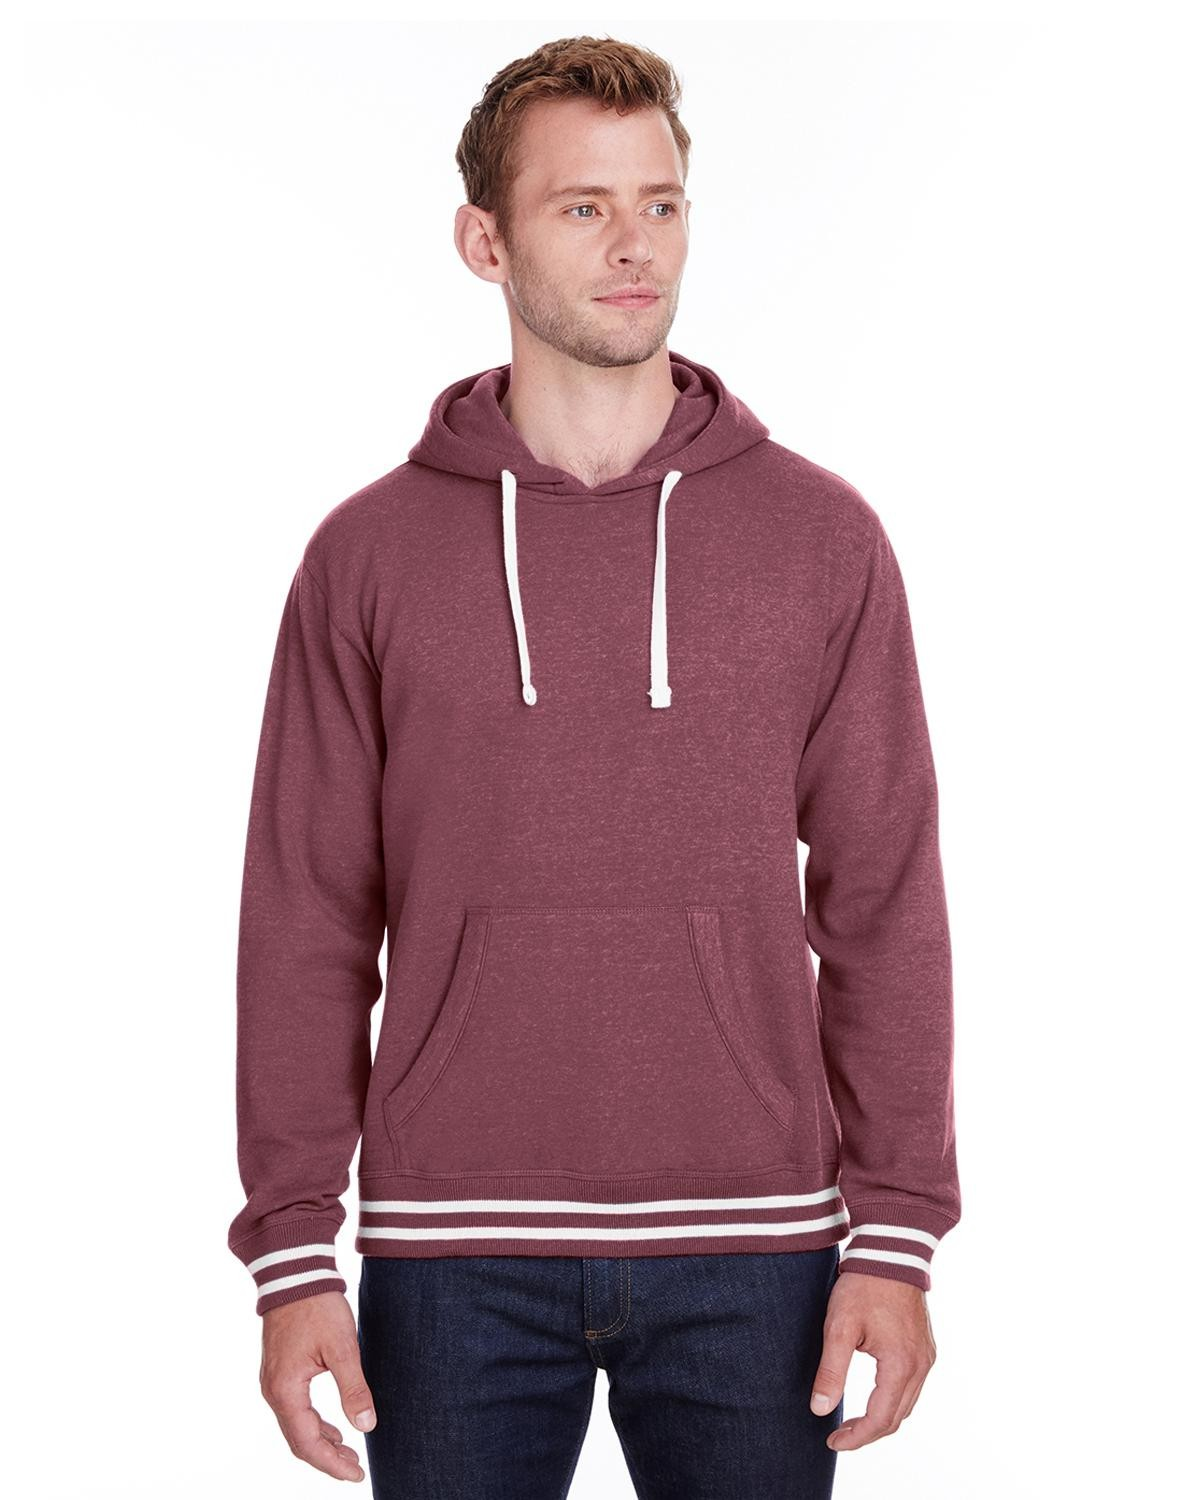 J America JA8649 Men's Relay Hooded Sweatshirt - Maroon - S from J America